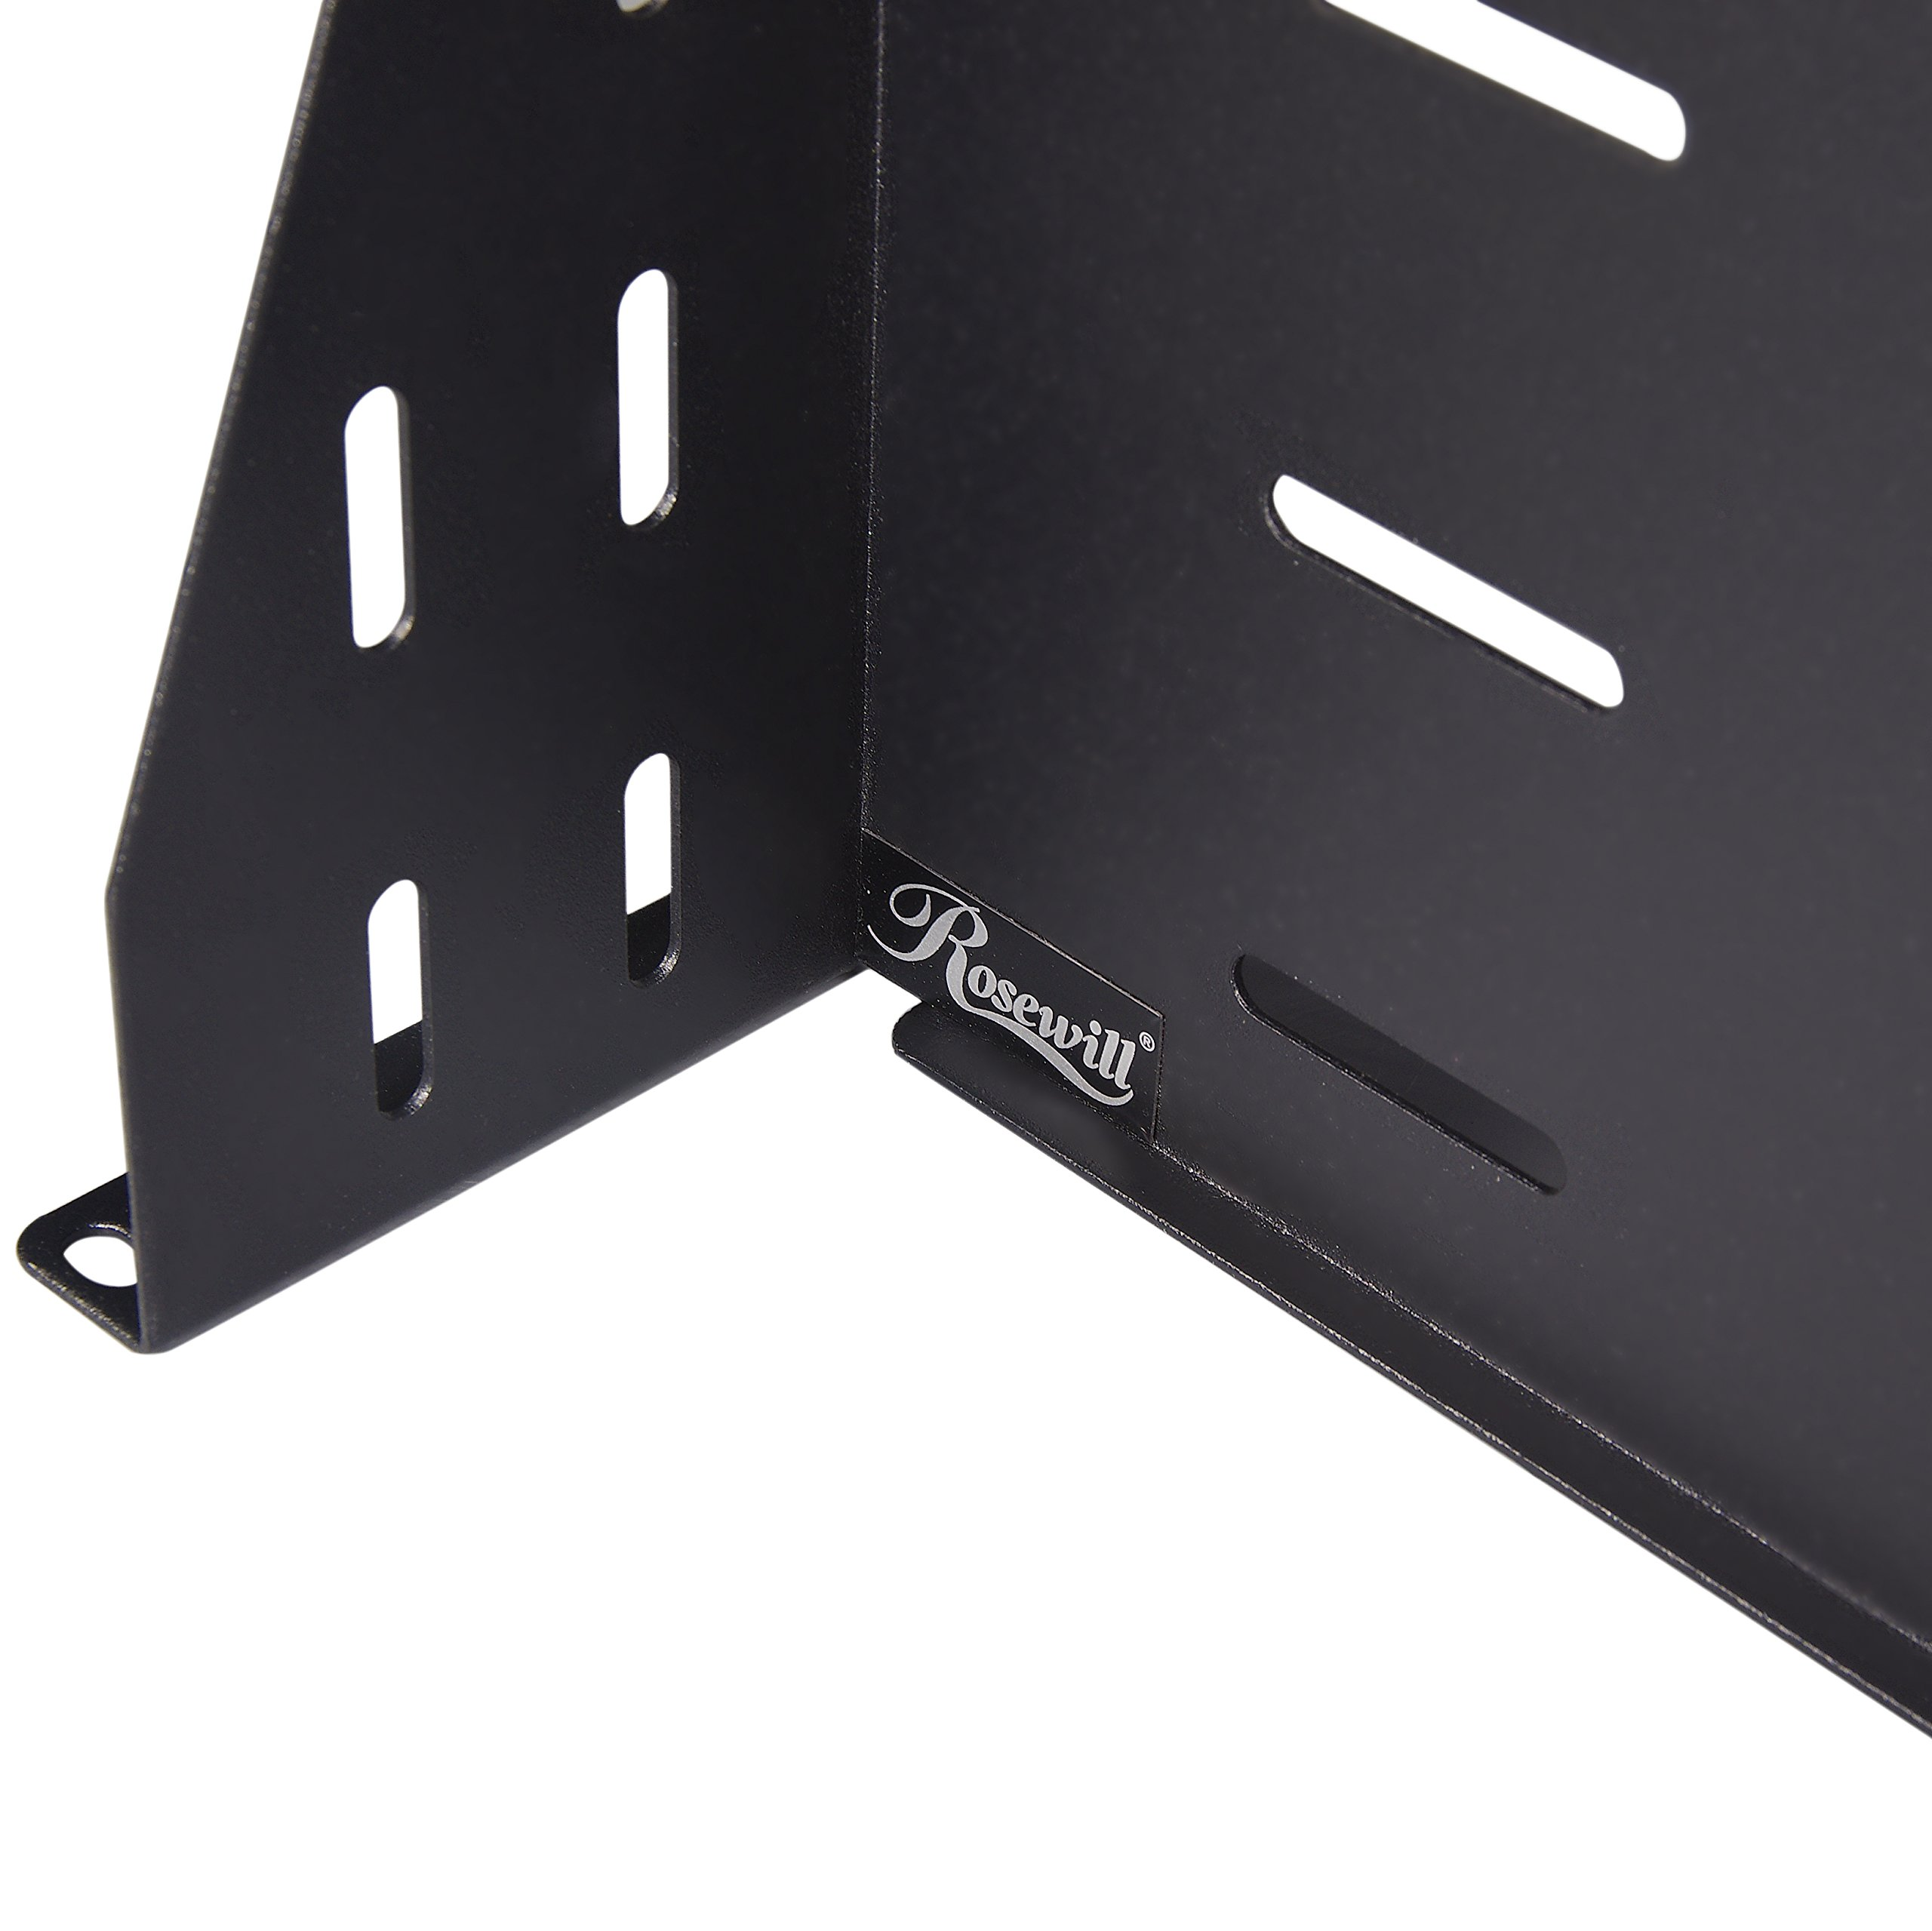 shelf inch series products duty hammond rack heavy mfg two accessories post brs battery dci